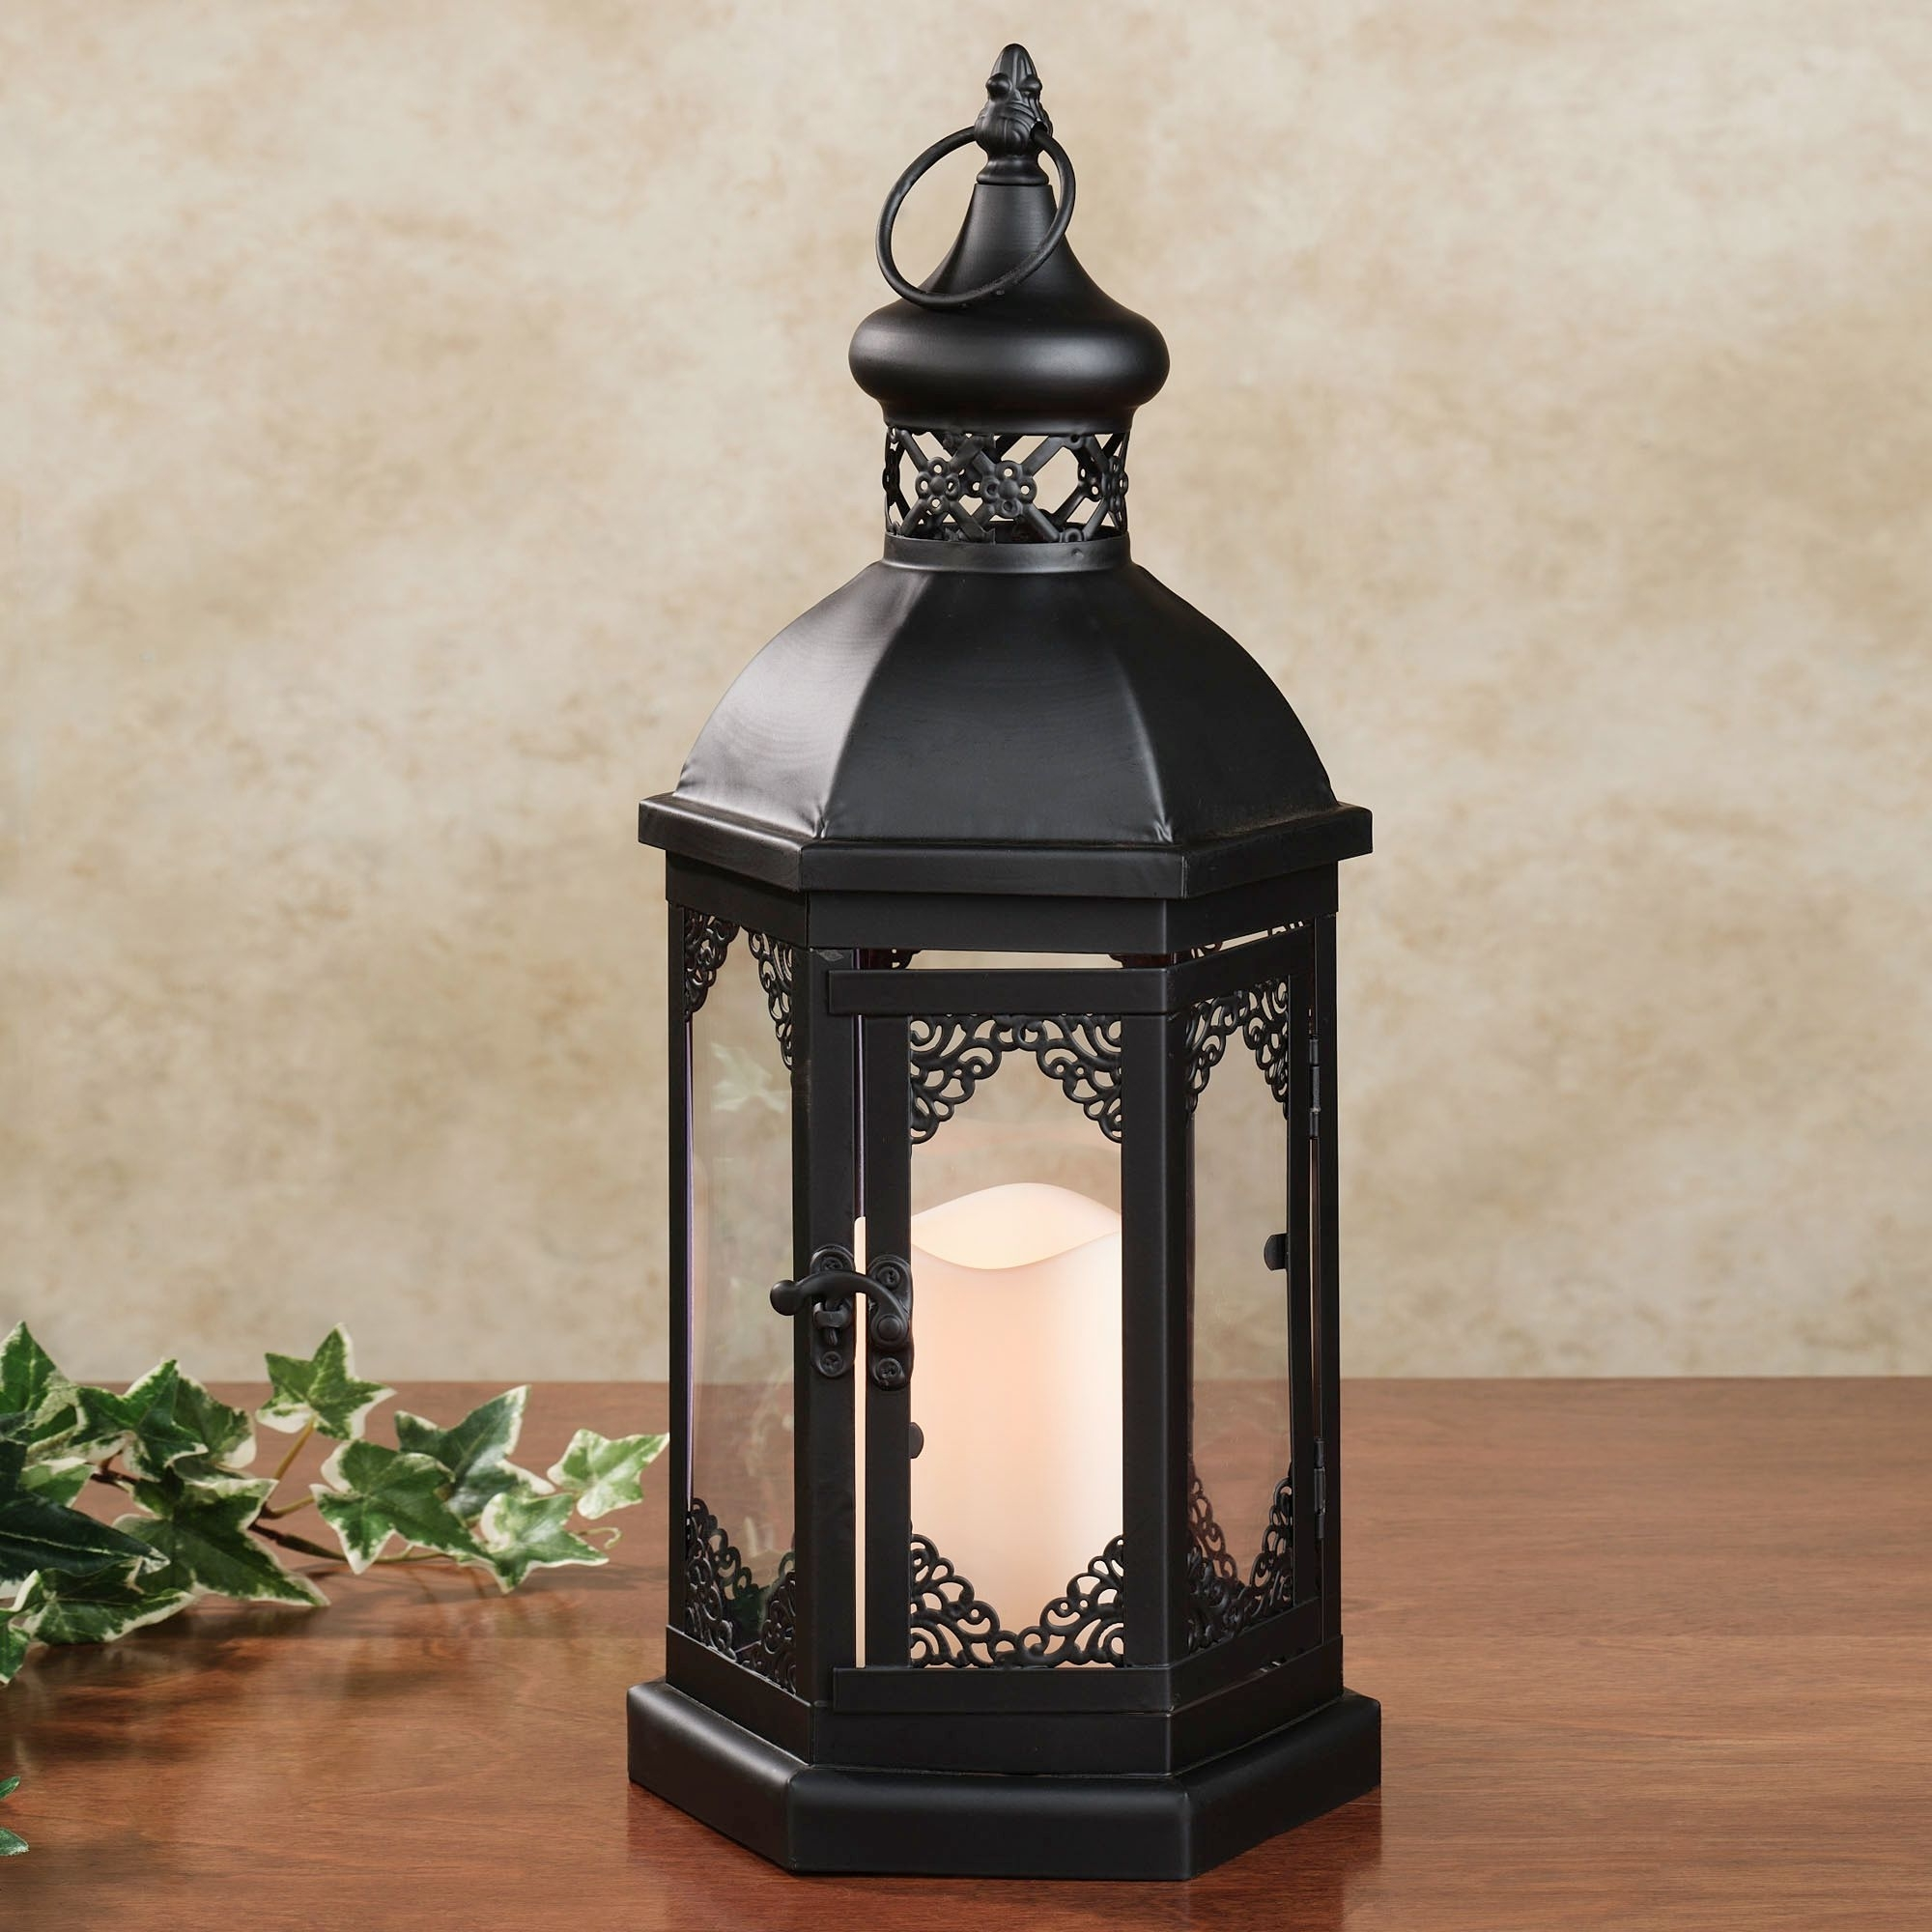 Outdoor Hanging Candle Lanterns Throughout 2019 Garden & Outdoor: Awesome Candle Lanterns For Outdoor Lighting Ideas (View 12 of 20)